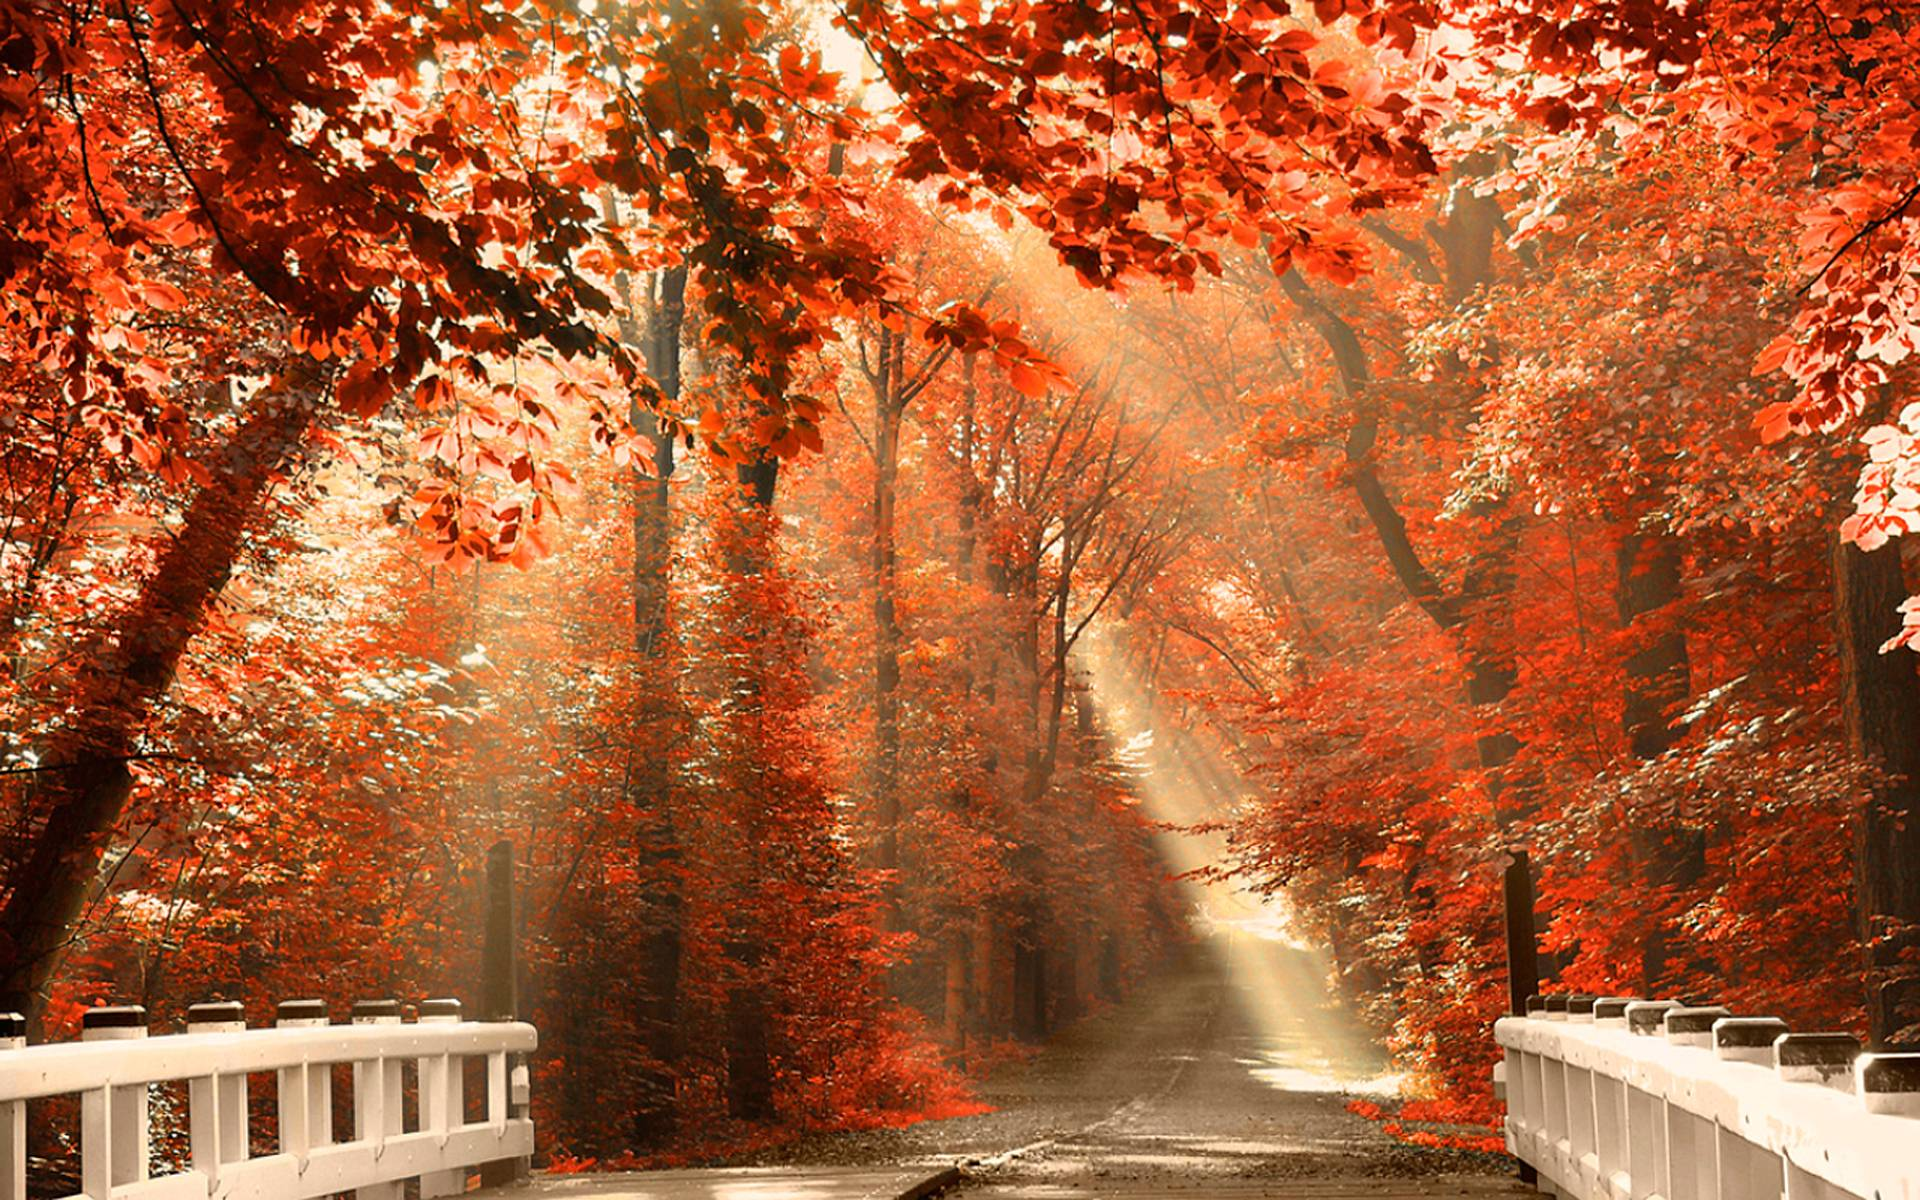 autumn nature wallpaper desktop pictures 5 hd wallpapers eakai